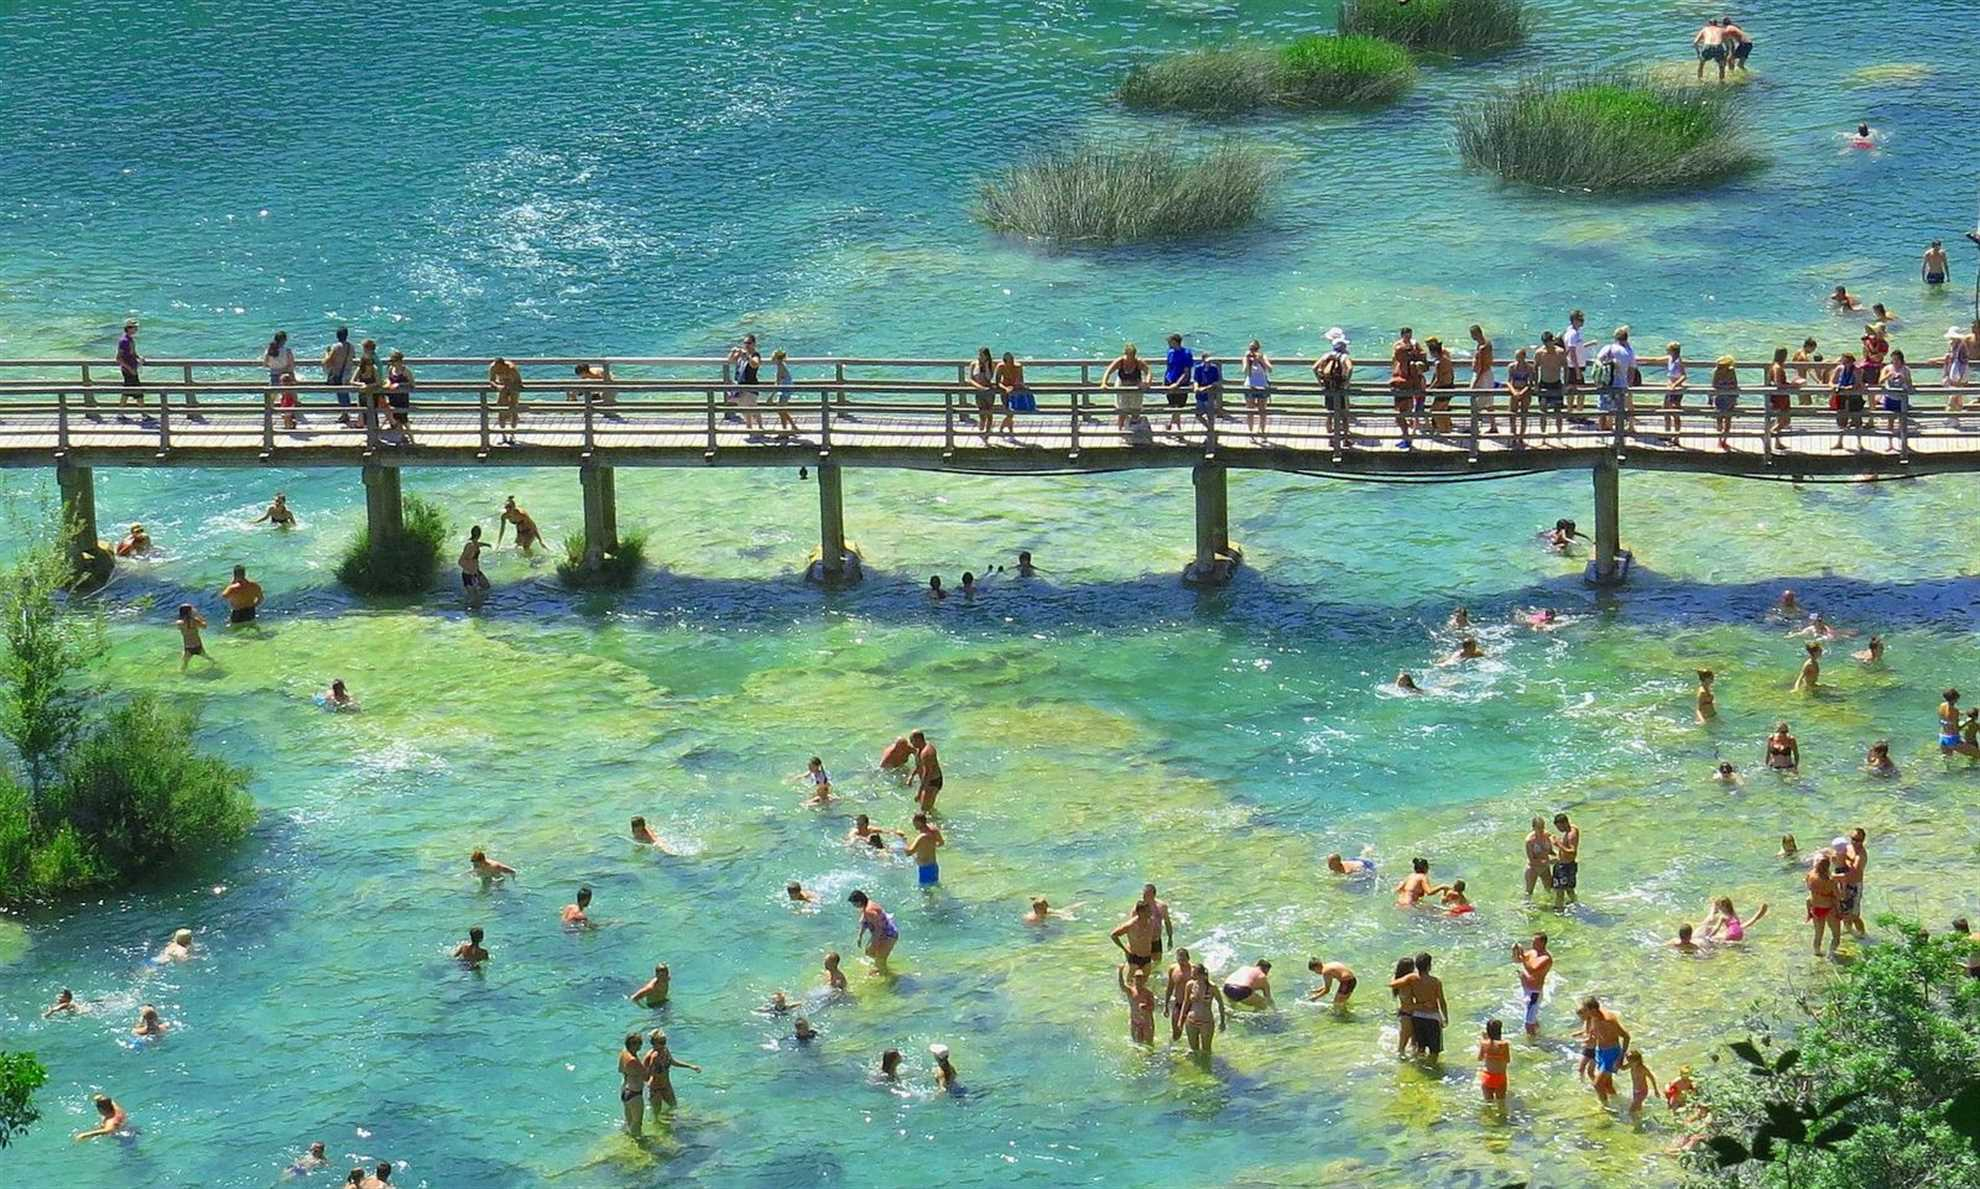 Wooden Pathways above water in Krka Waterfalls National Park